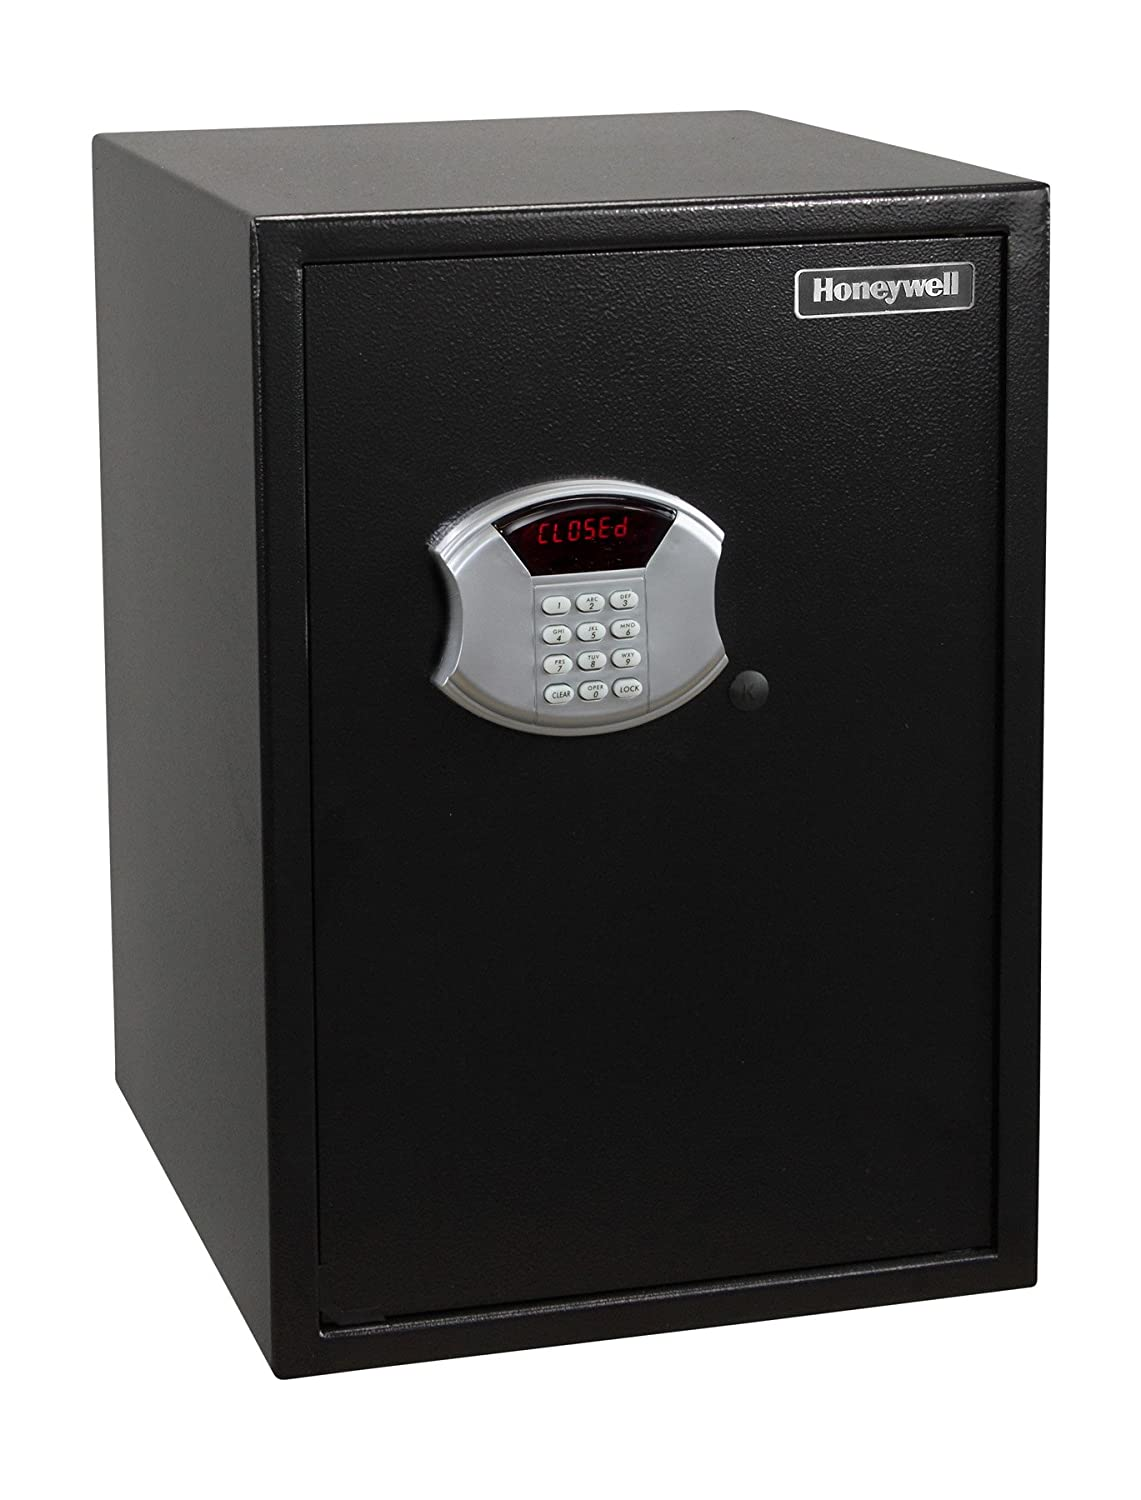 Honeywell Safes & Door Locks 5107 Large Steel Security Safe HONEYWELL-5107 Large 2.87-Cubic Feet, Large Black